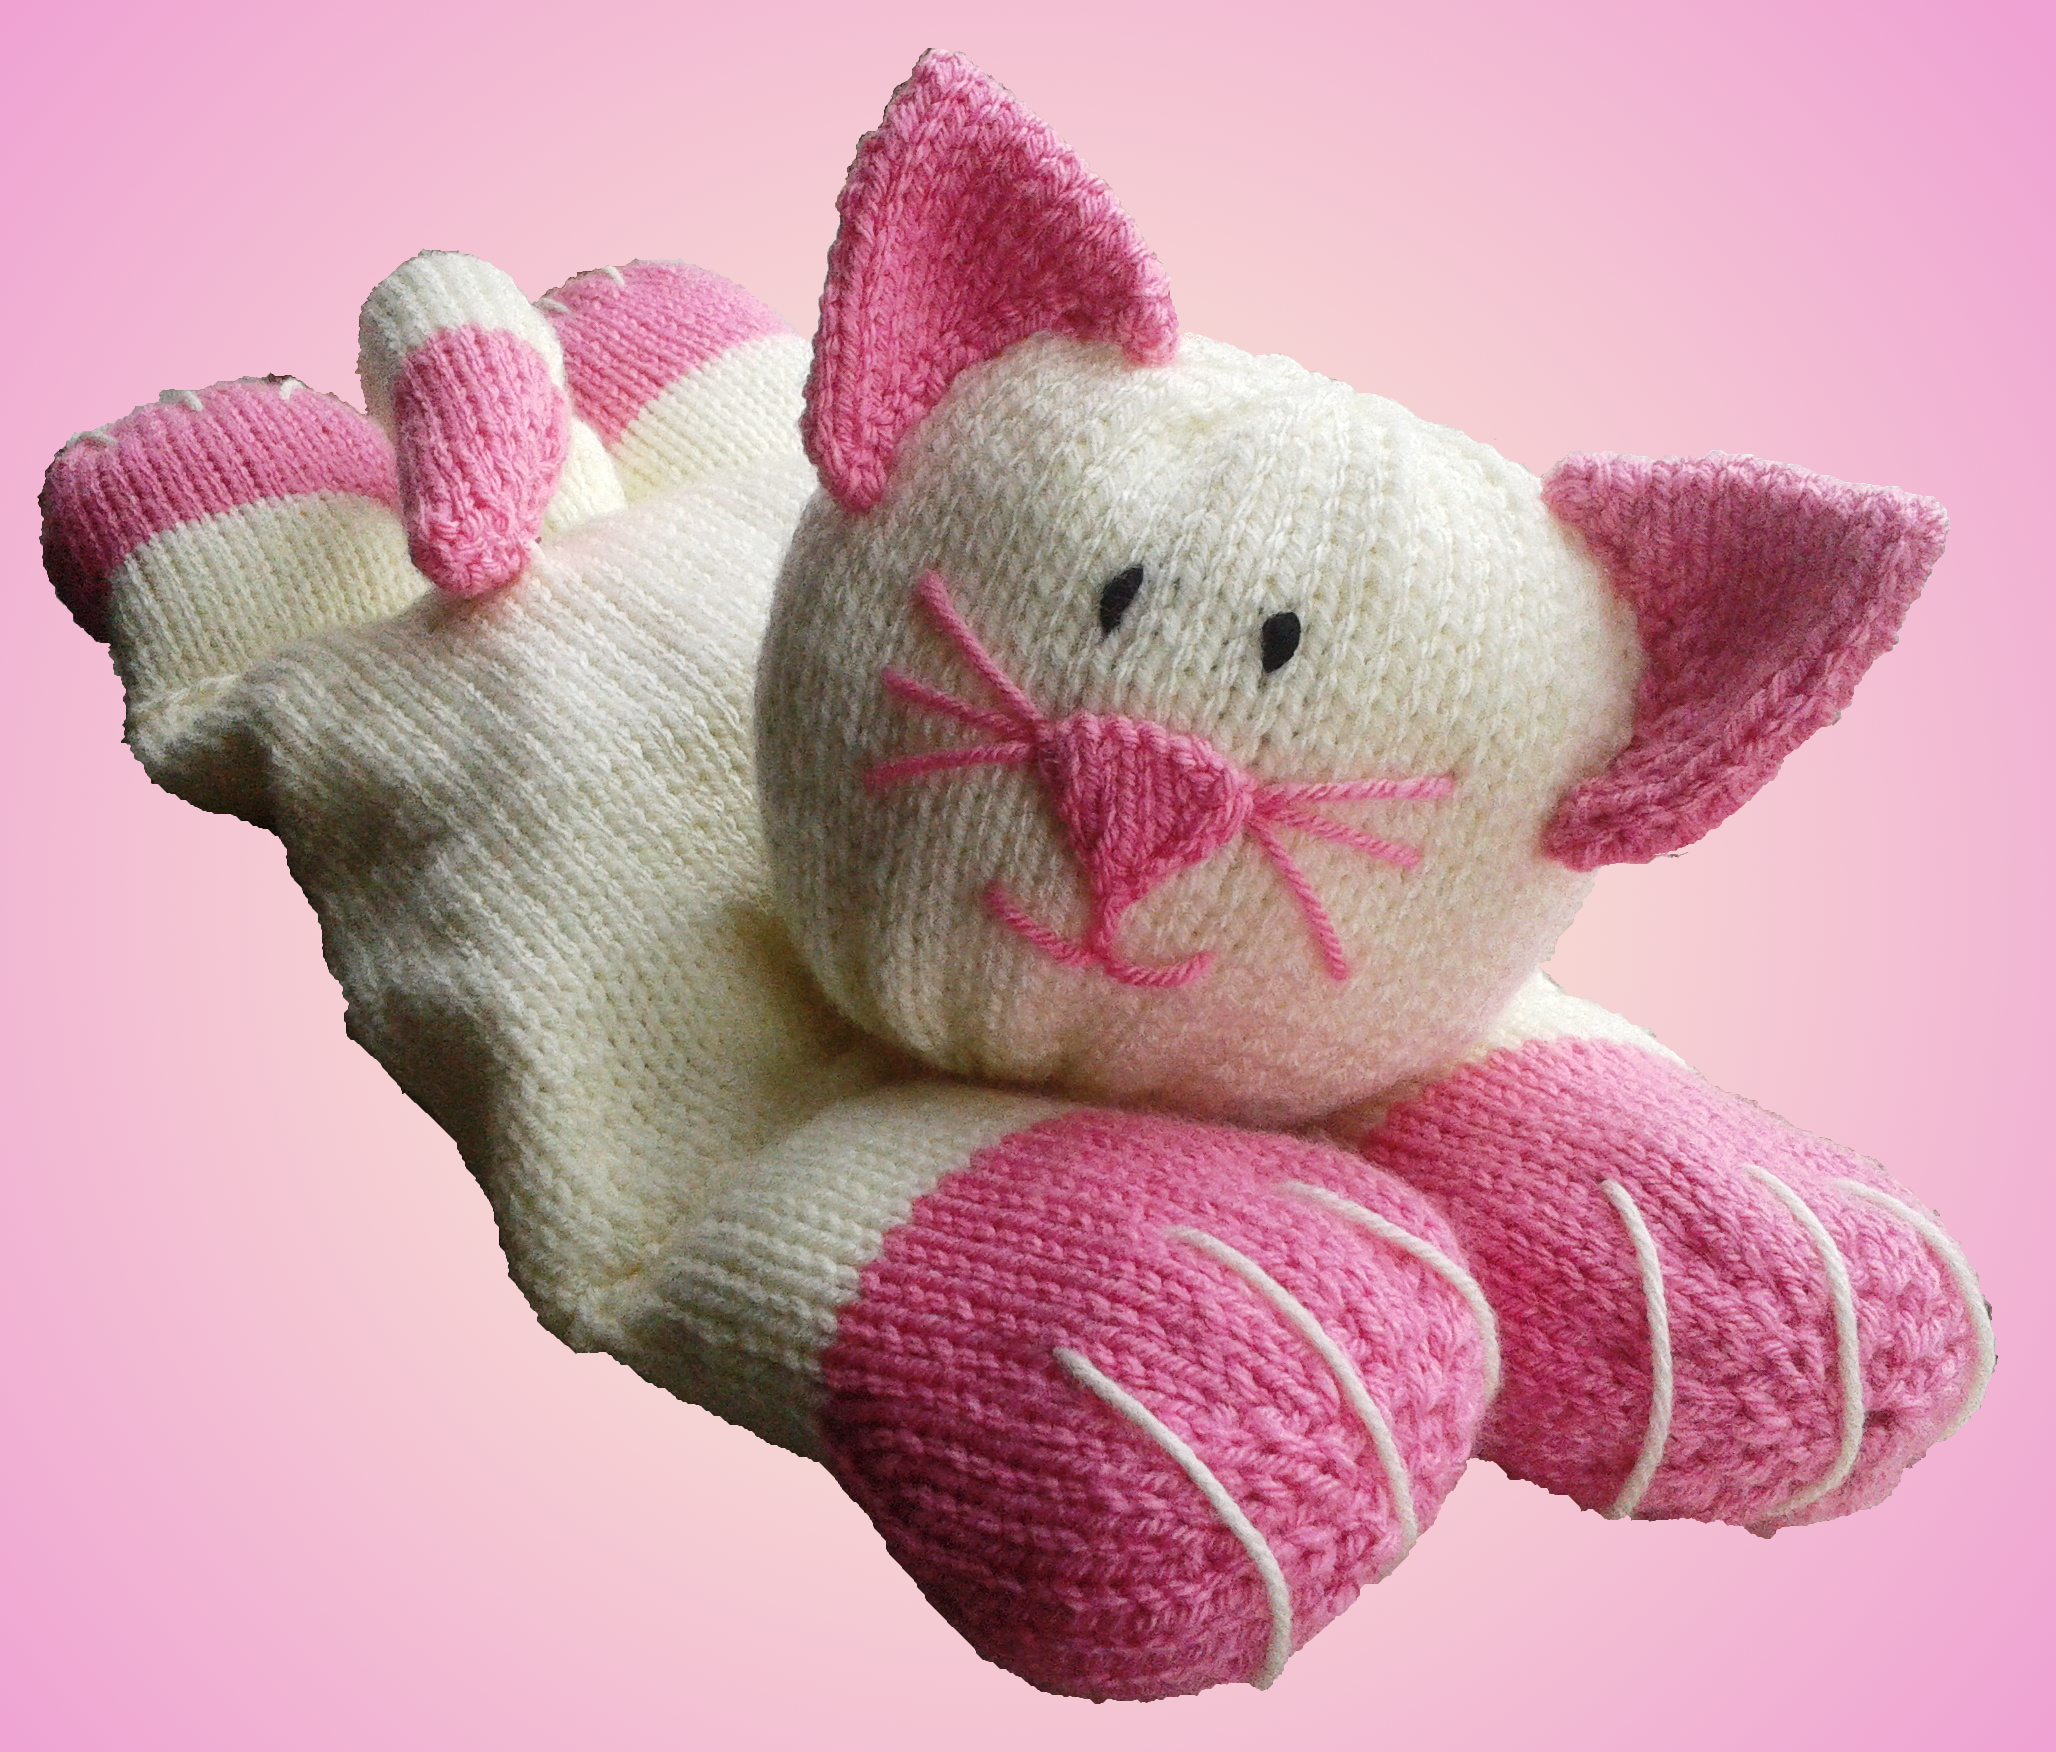 The Cat s Pyjamas   Pyjama Case Knitting Pattern   Knitting by Post